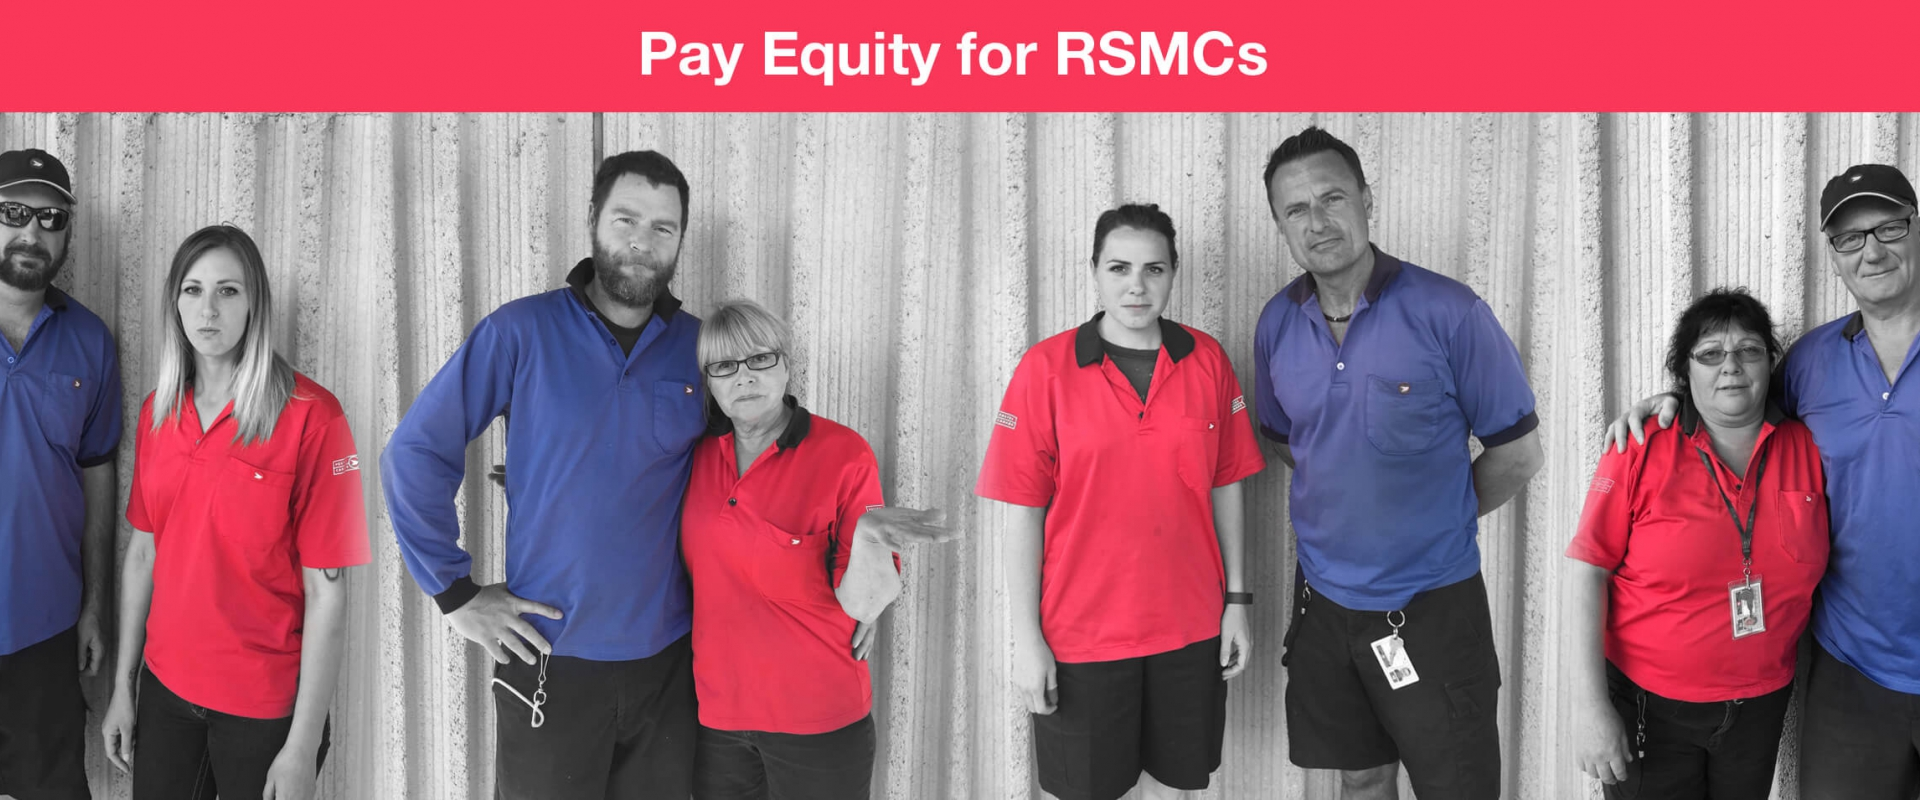 Pay Equity for RSMCs